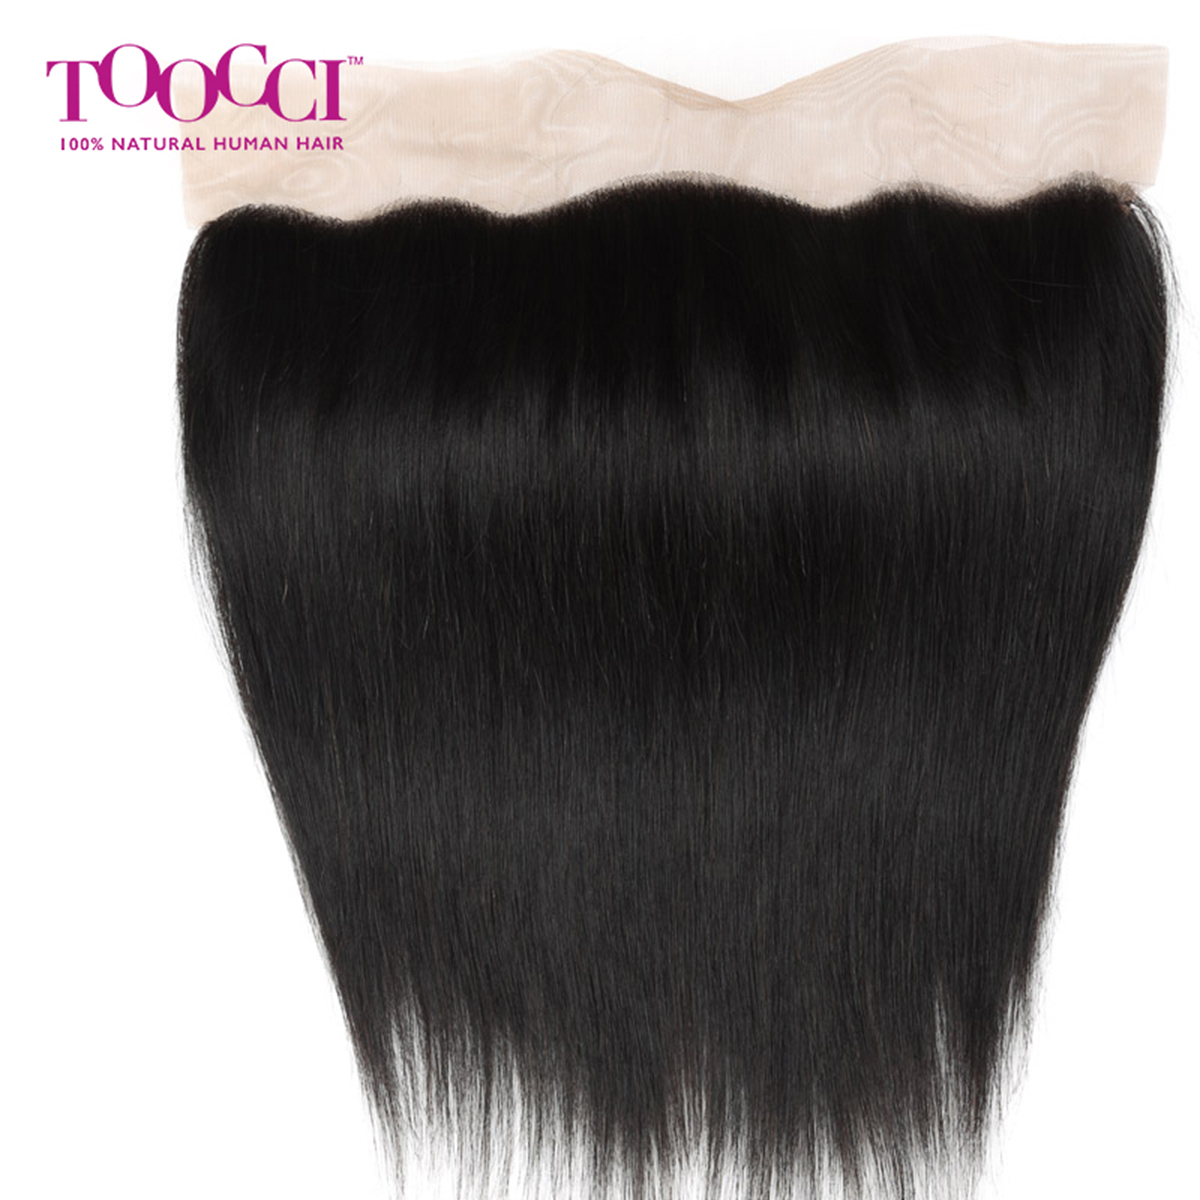 8A-Brazilian-Virgin-Straight-100-Human-Hair-1-3-Bundles-with-Lace-Closure-US thumbnail 20